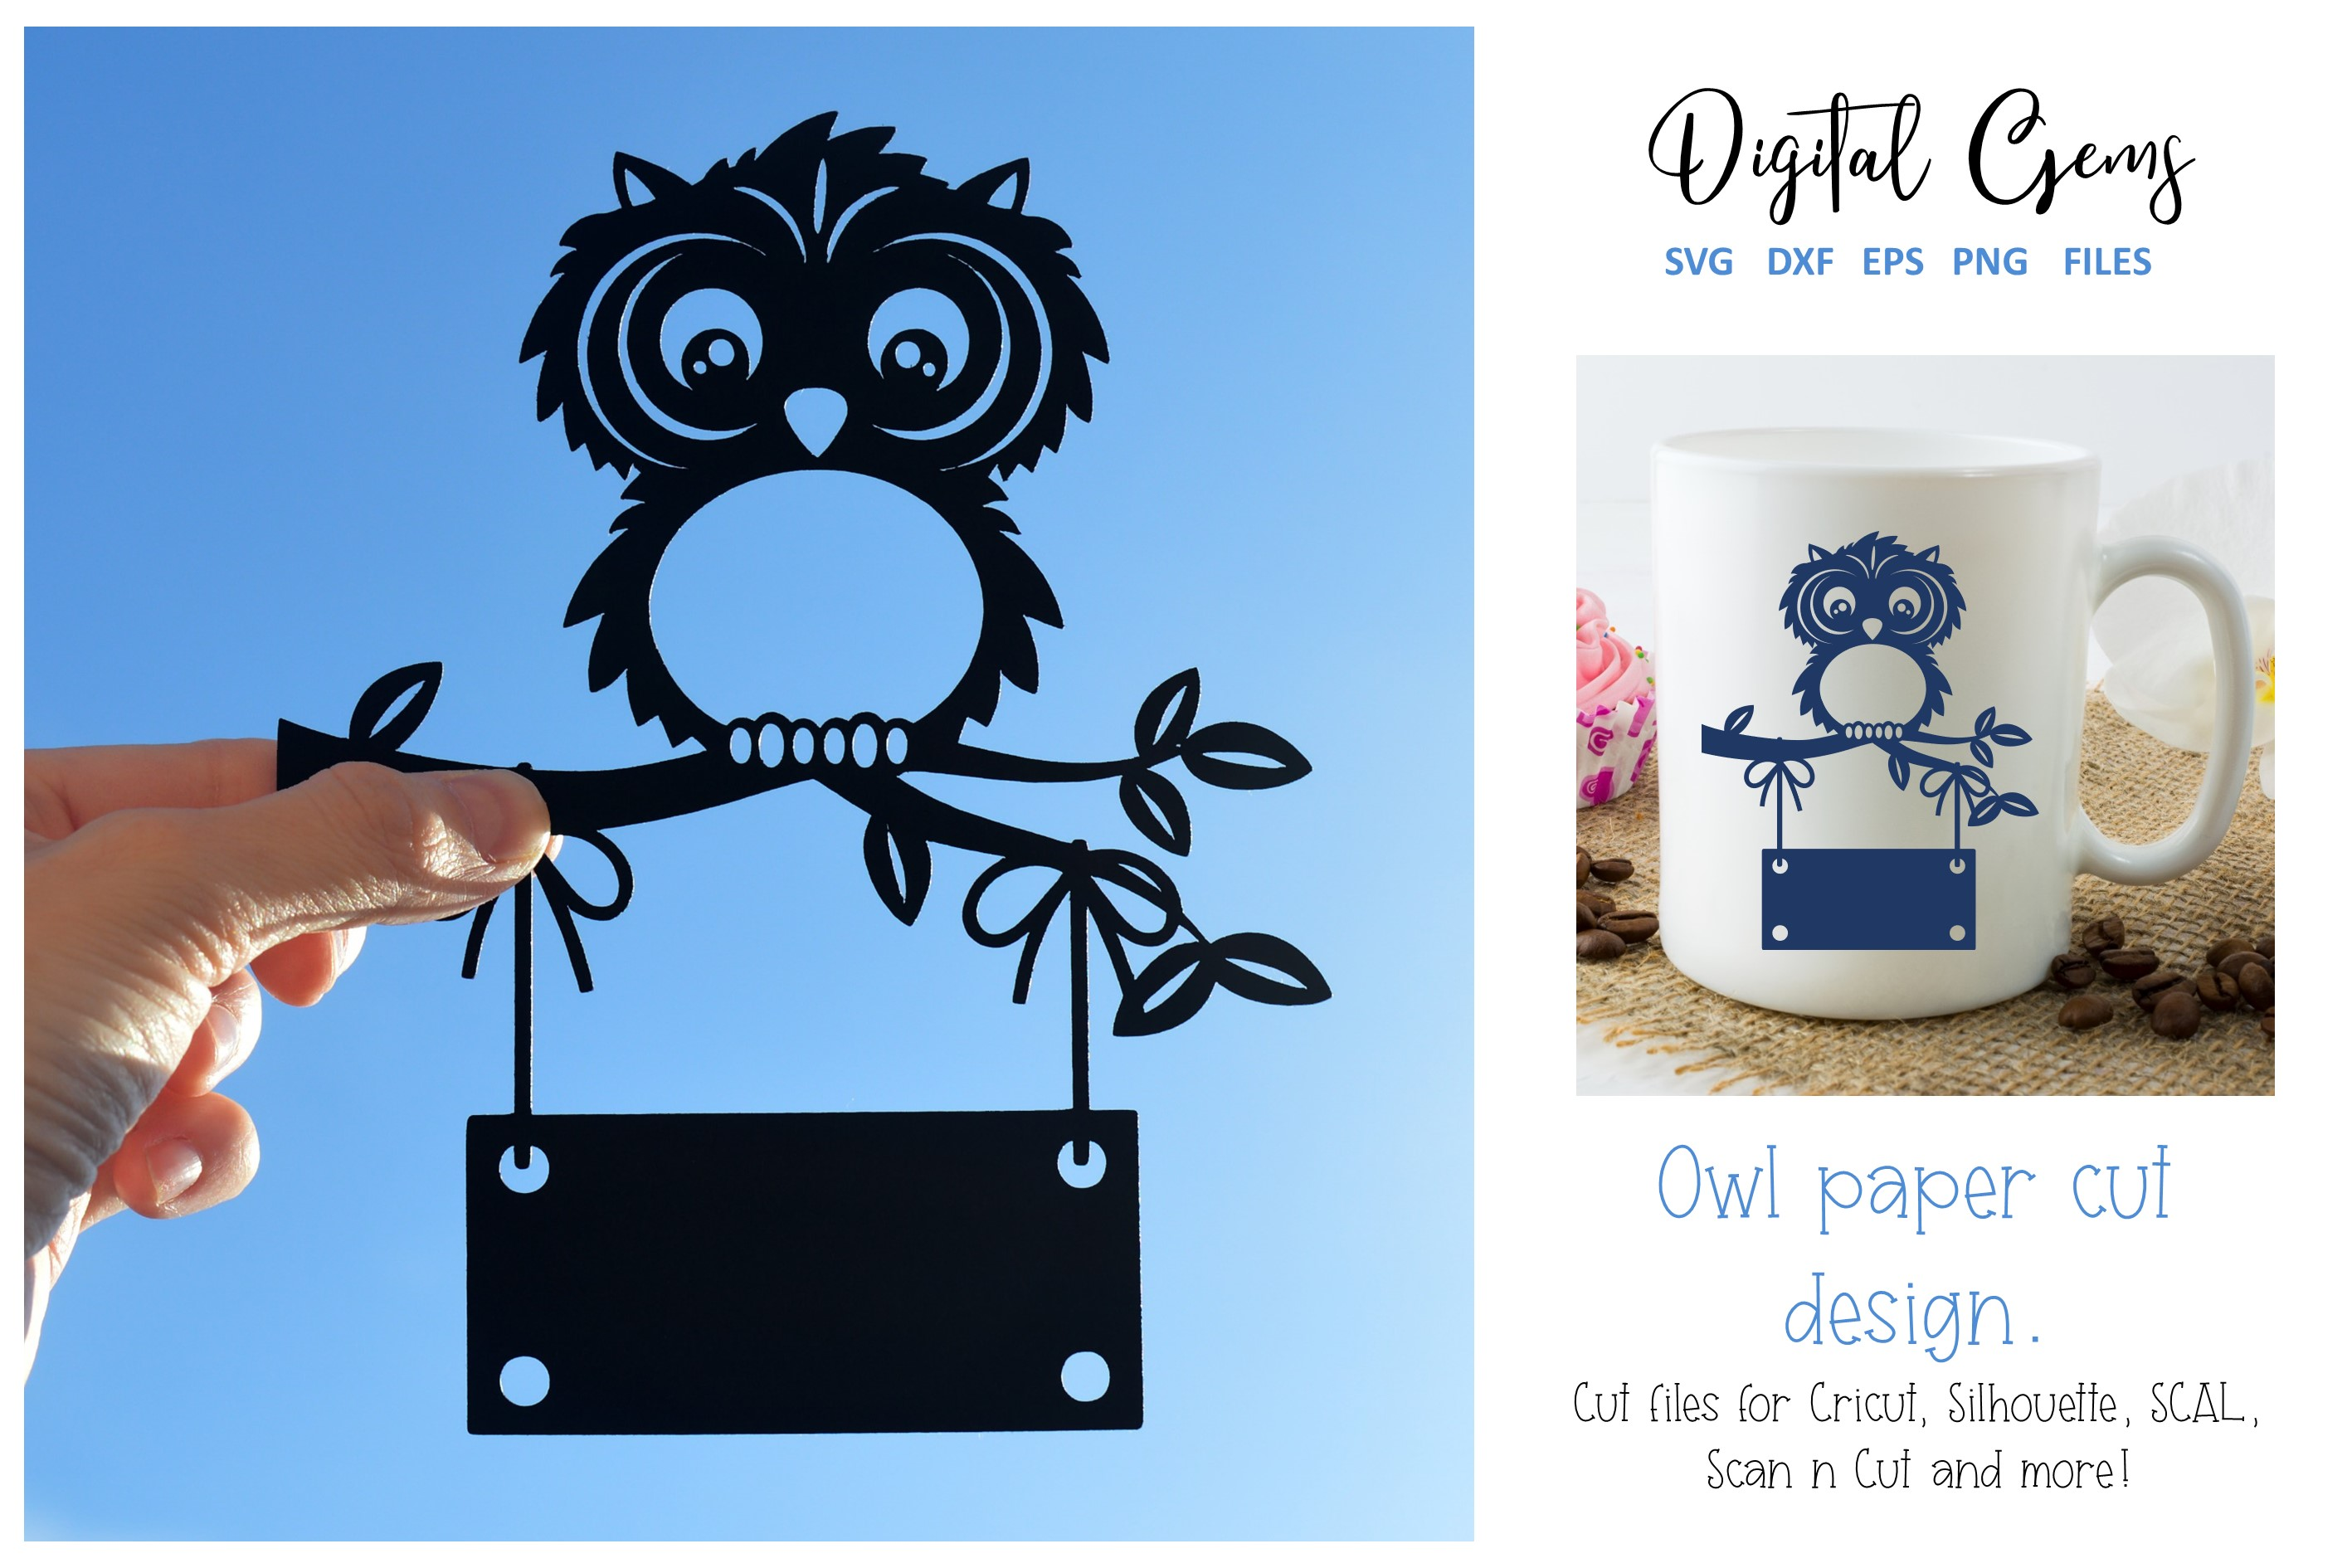 Download Free Owl Paper Cut Design Graphic By Digital Gems Creative Fabrica for Cricut Explore, Silhouette and other cutting machines.